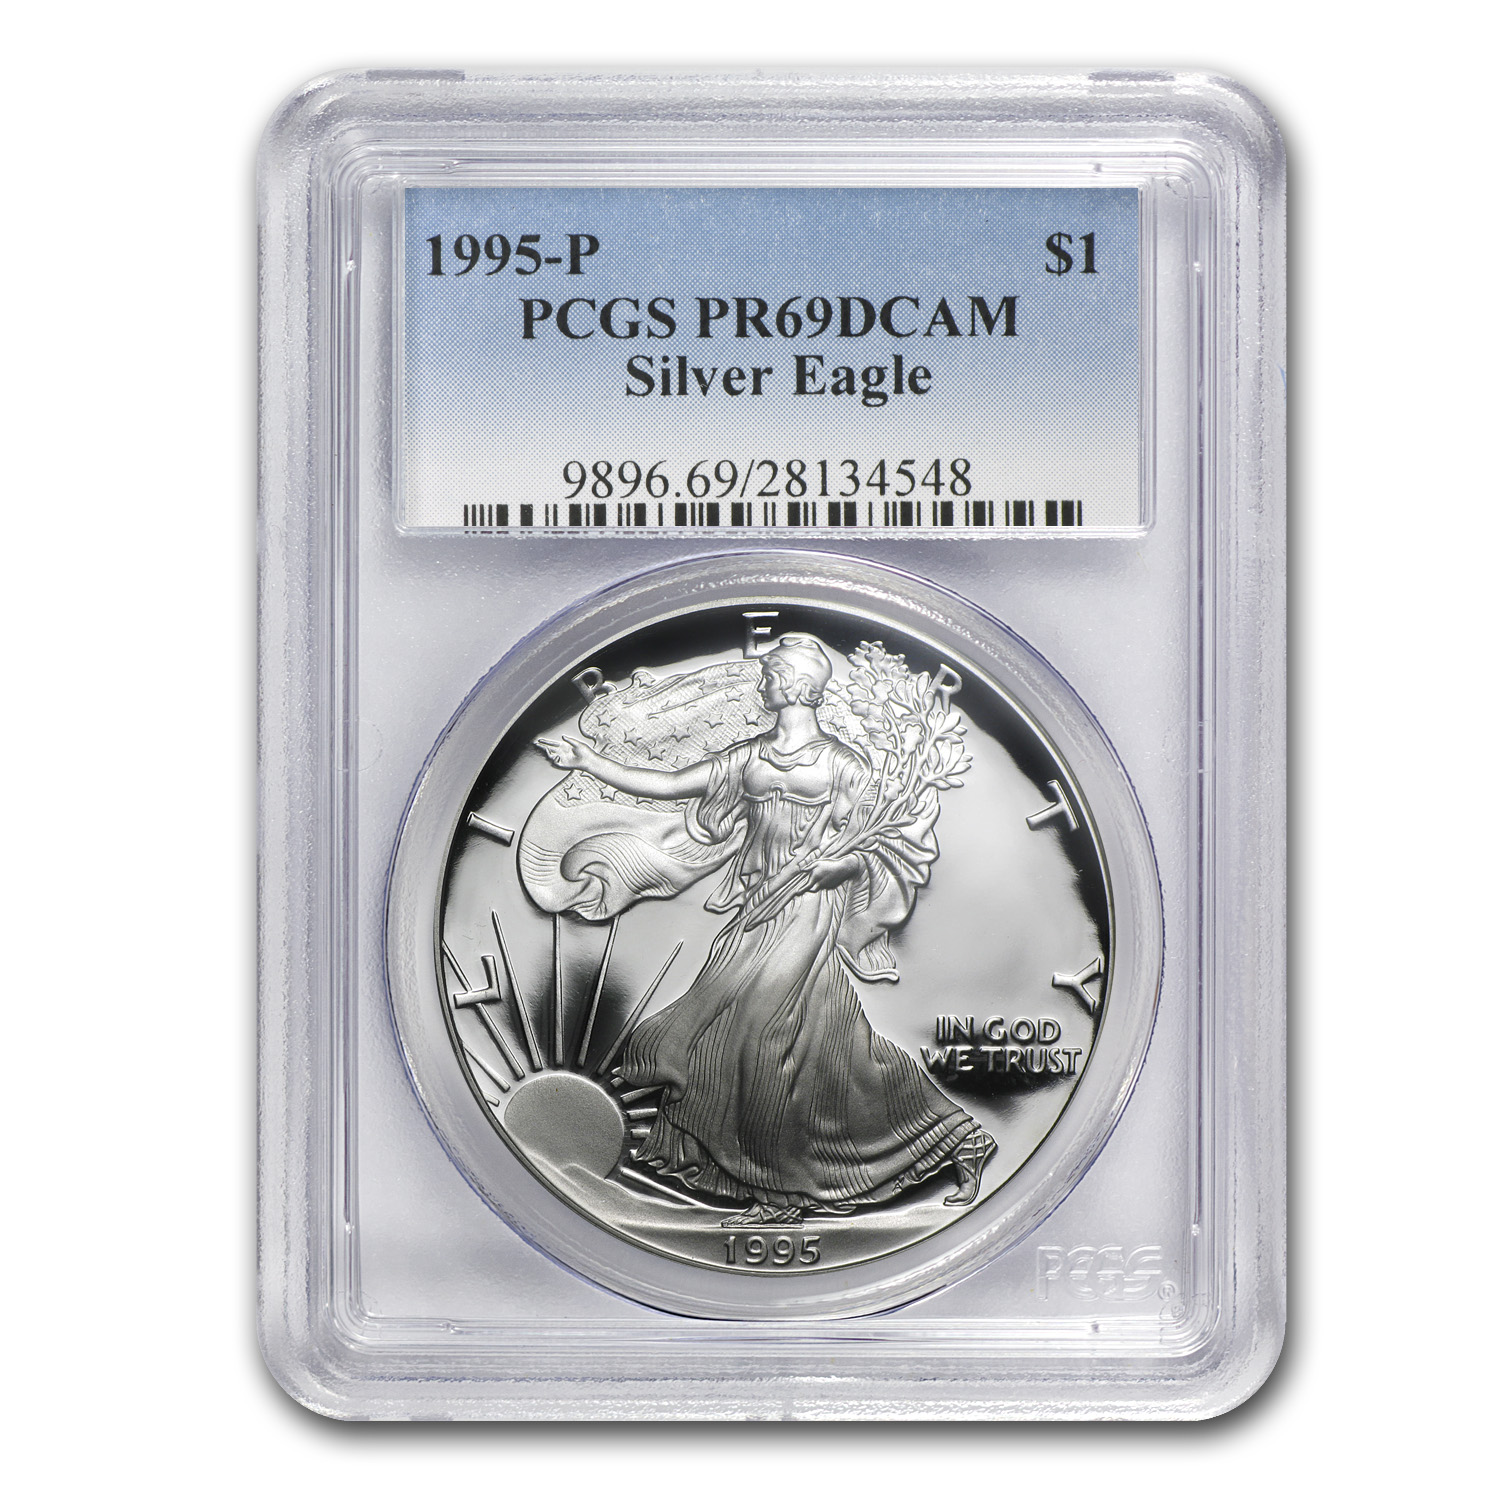 1986-2013 27-Coin Proof Silver American Eagle Set PR-69 PCGS